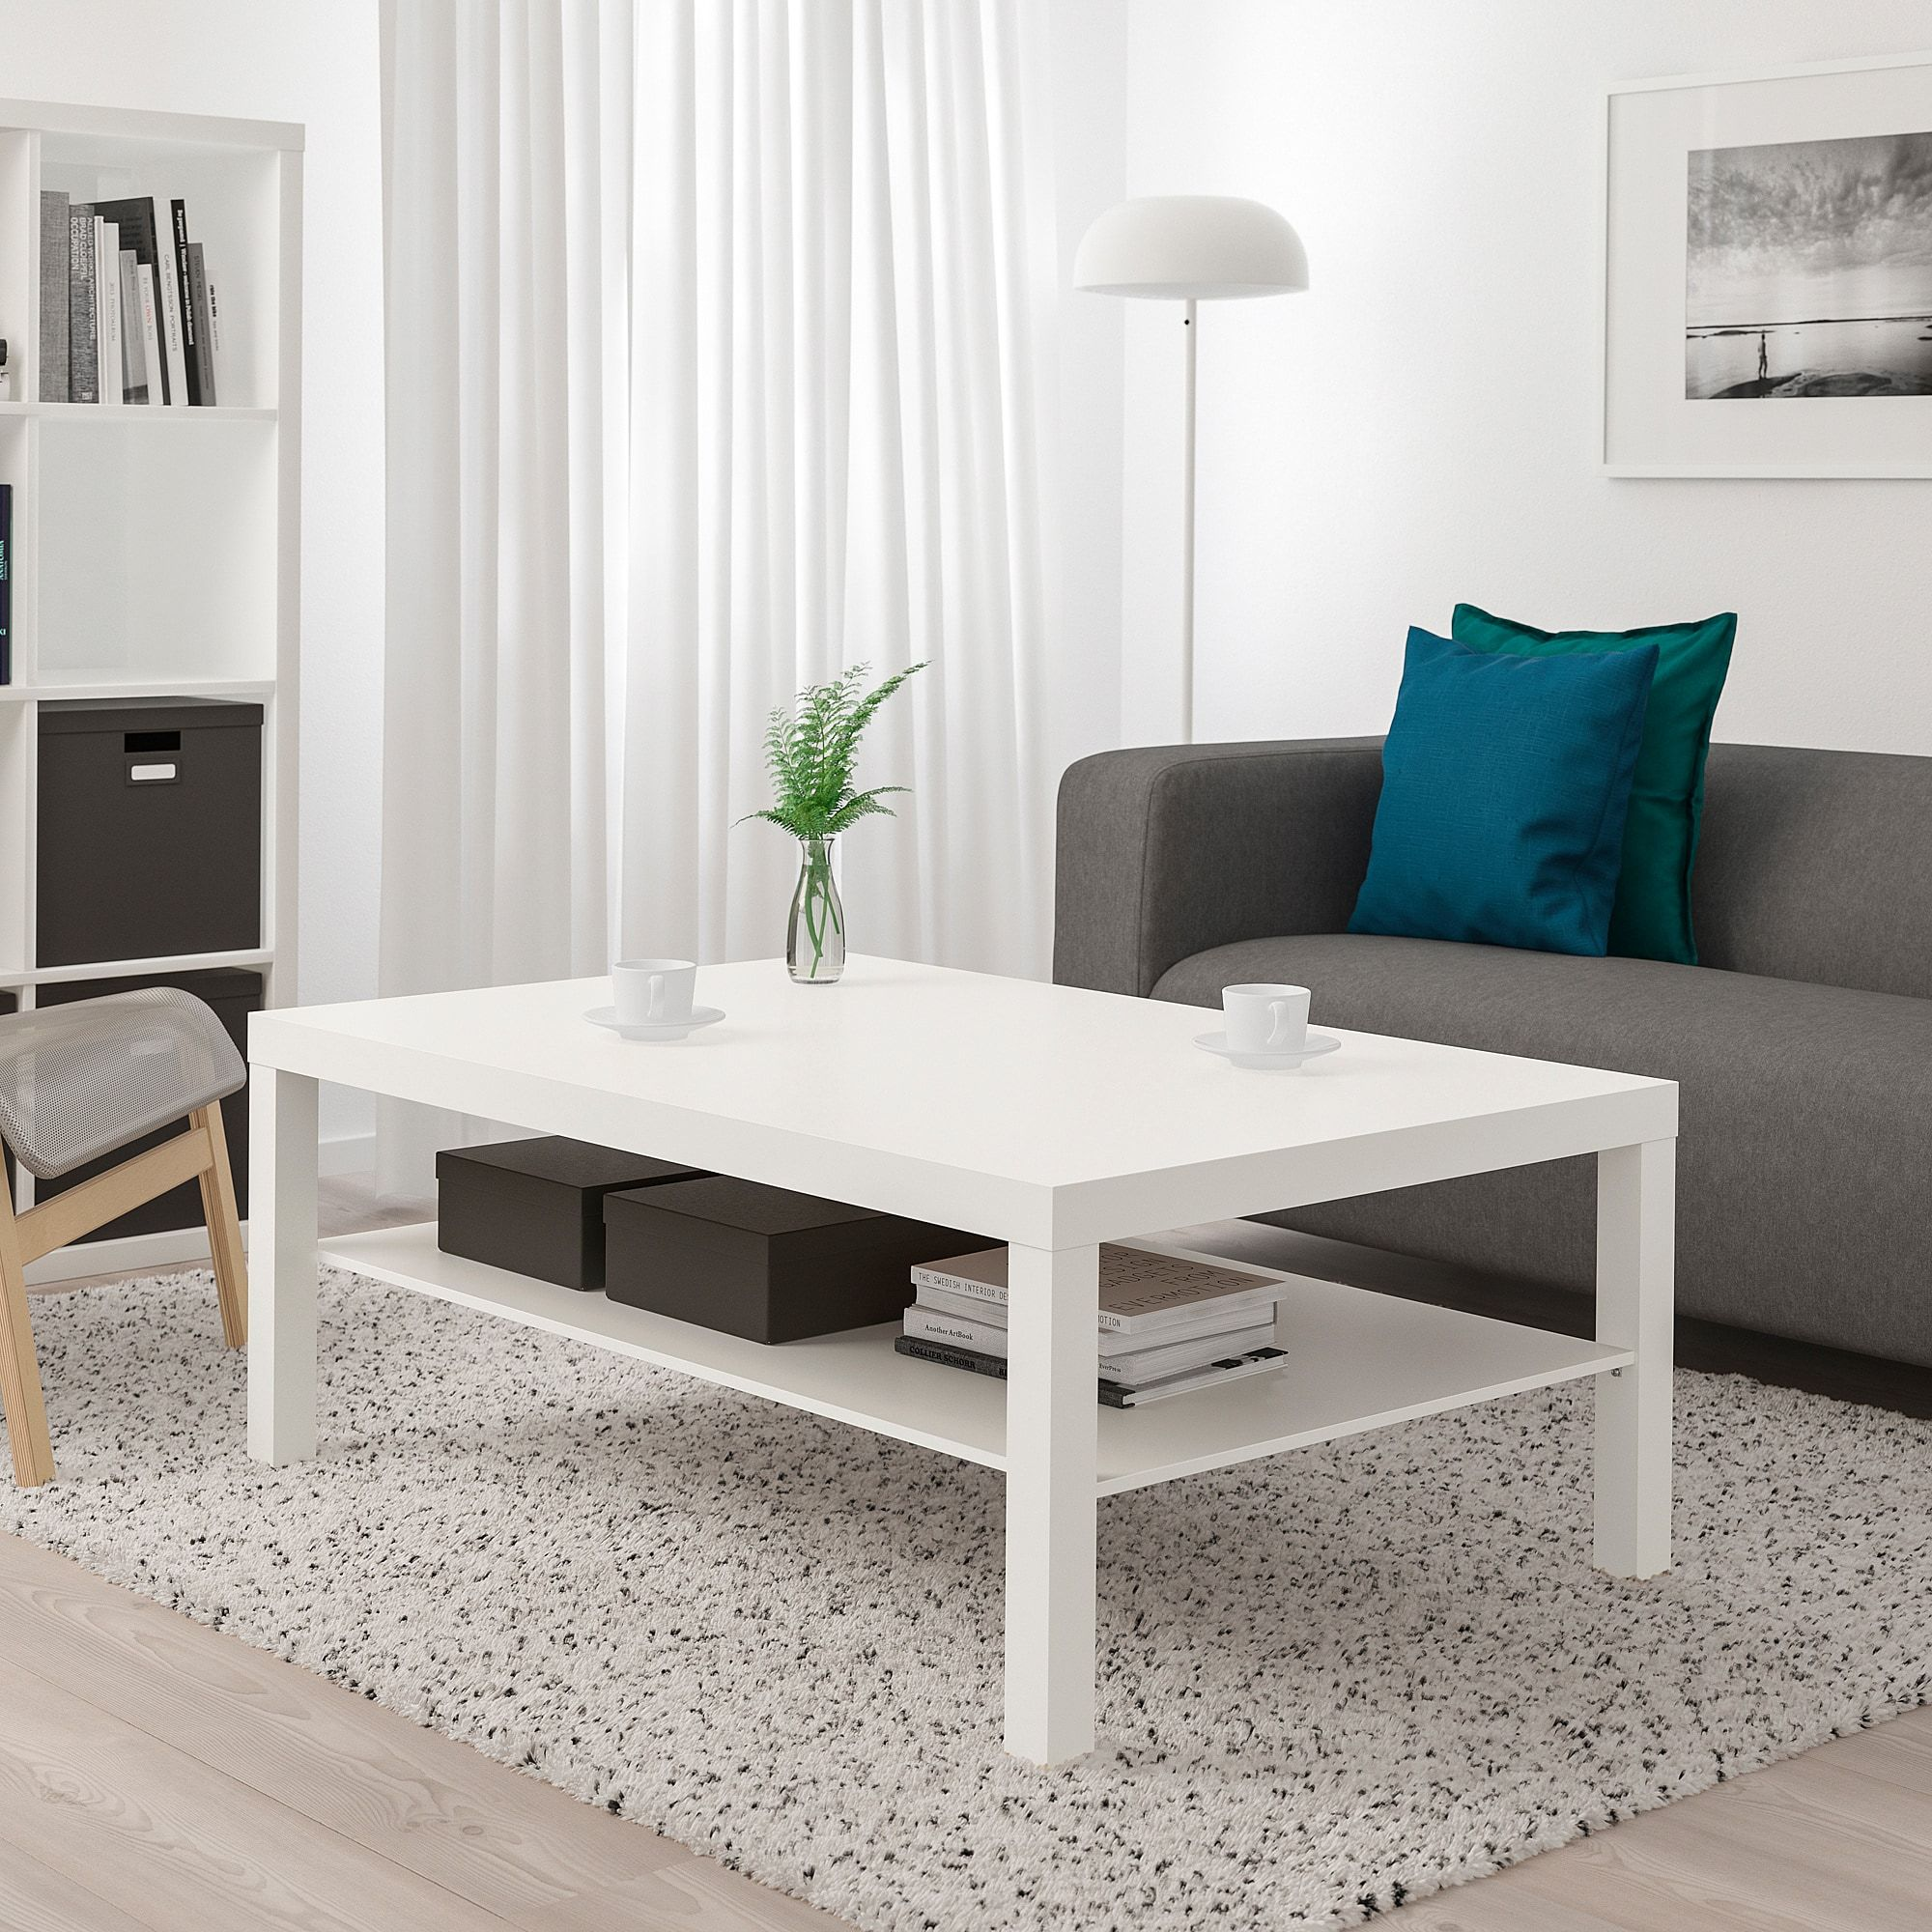 Lack White Coffee Table 118x78 Cm Ikea In 2021 Lack Coffee Table Ikea Lack Coffee Table White Coffee Table Living Room [ 2000 x 2000 Pixel ]